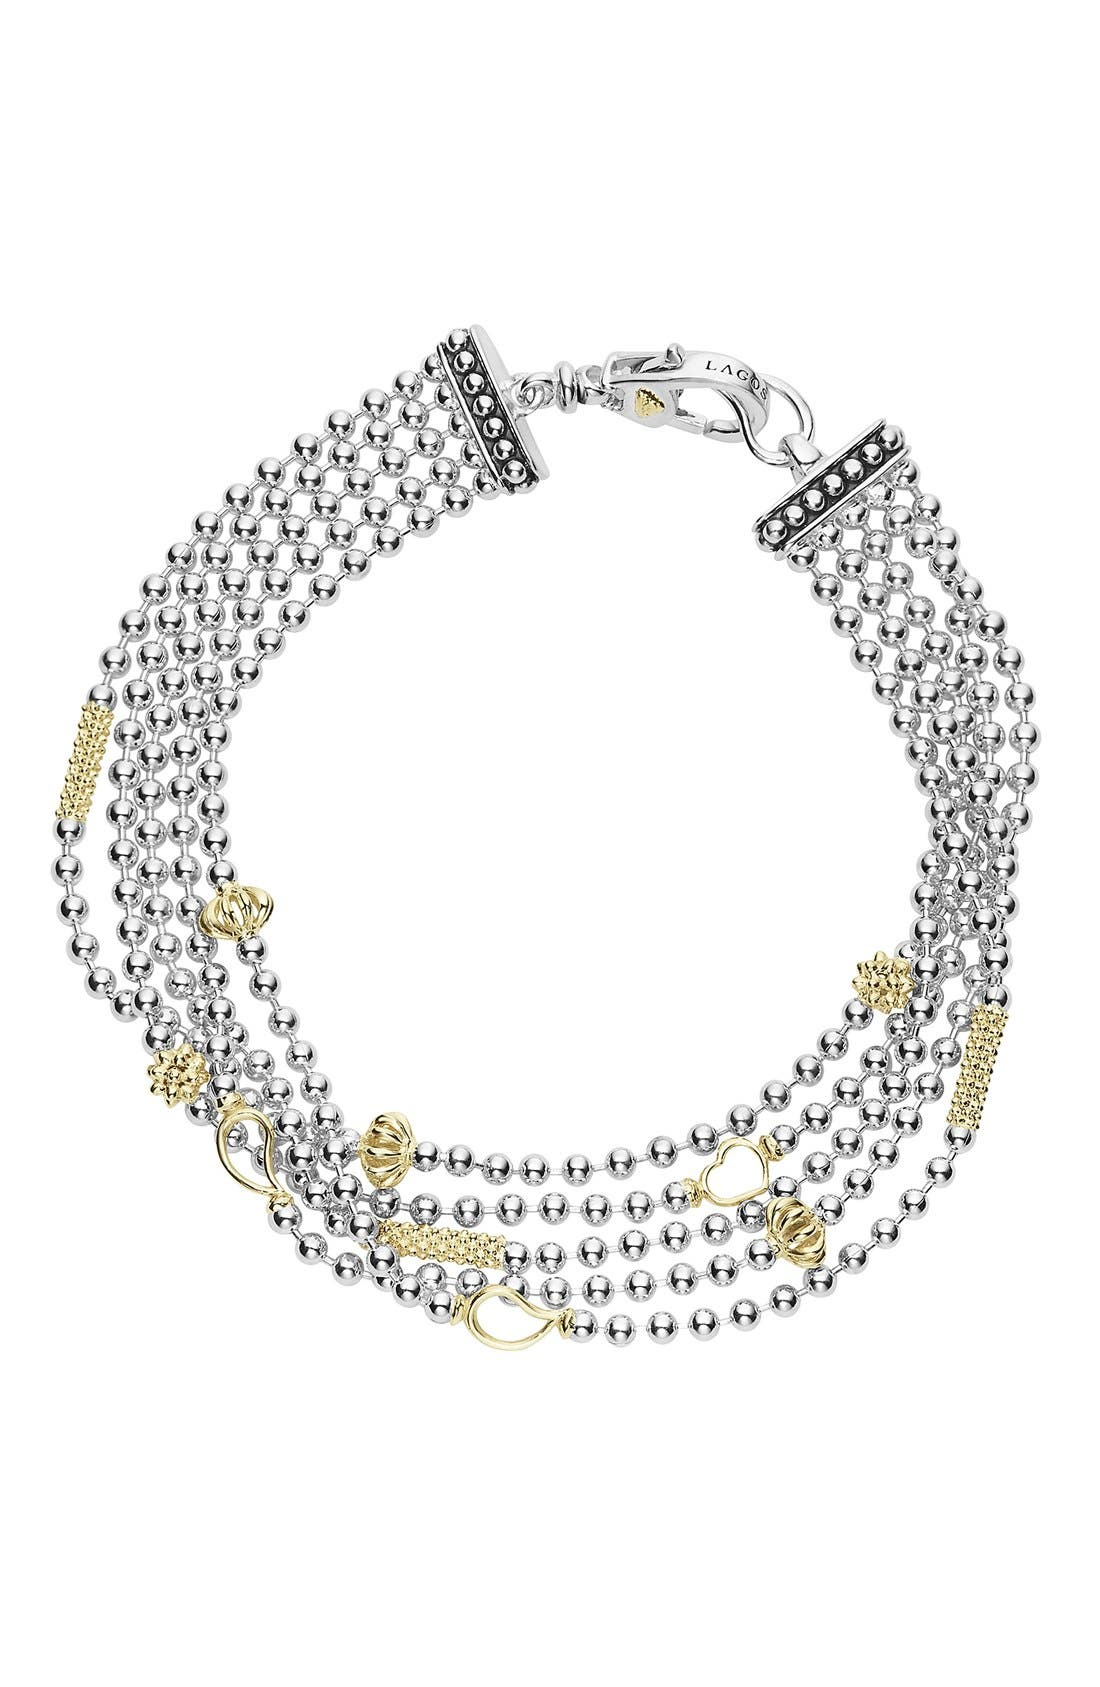 'Caviar Icon' Multistrand Bracelet,                             Main thumbnail 1, color,                             Silver/ Gold